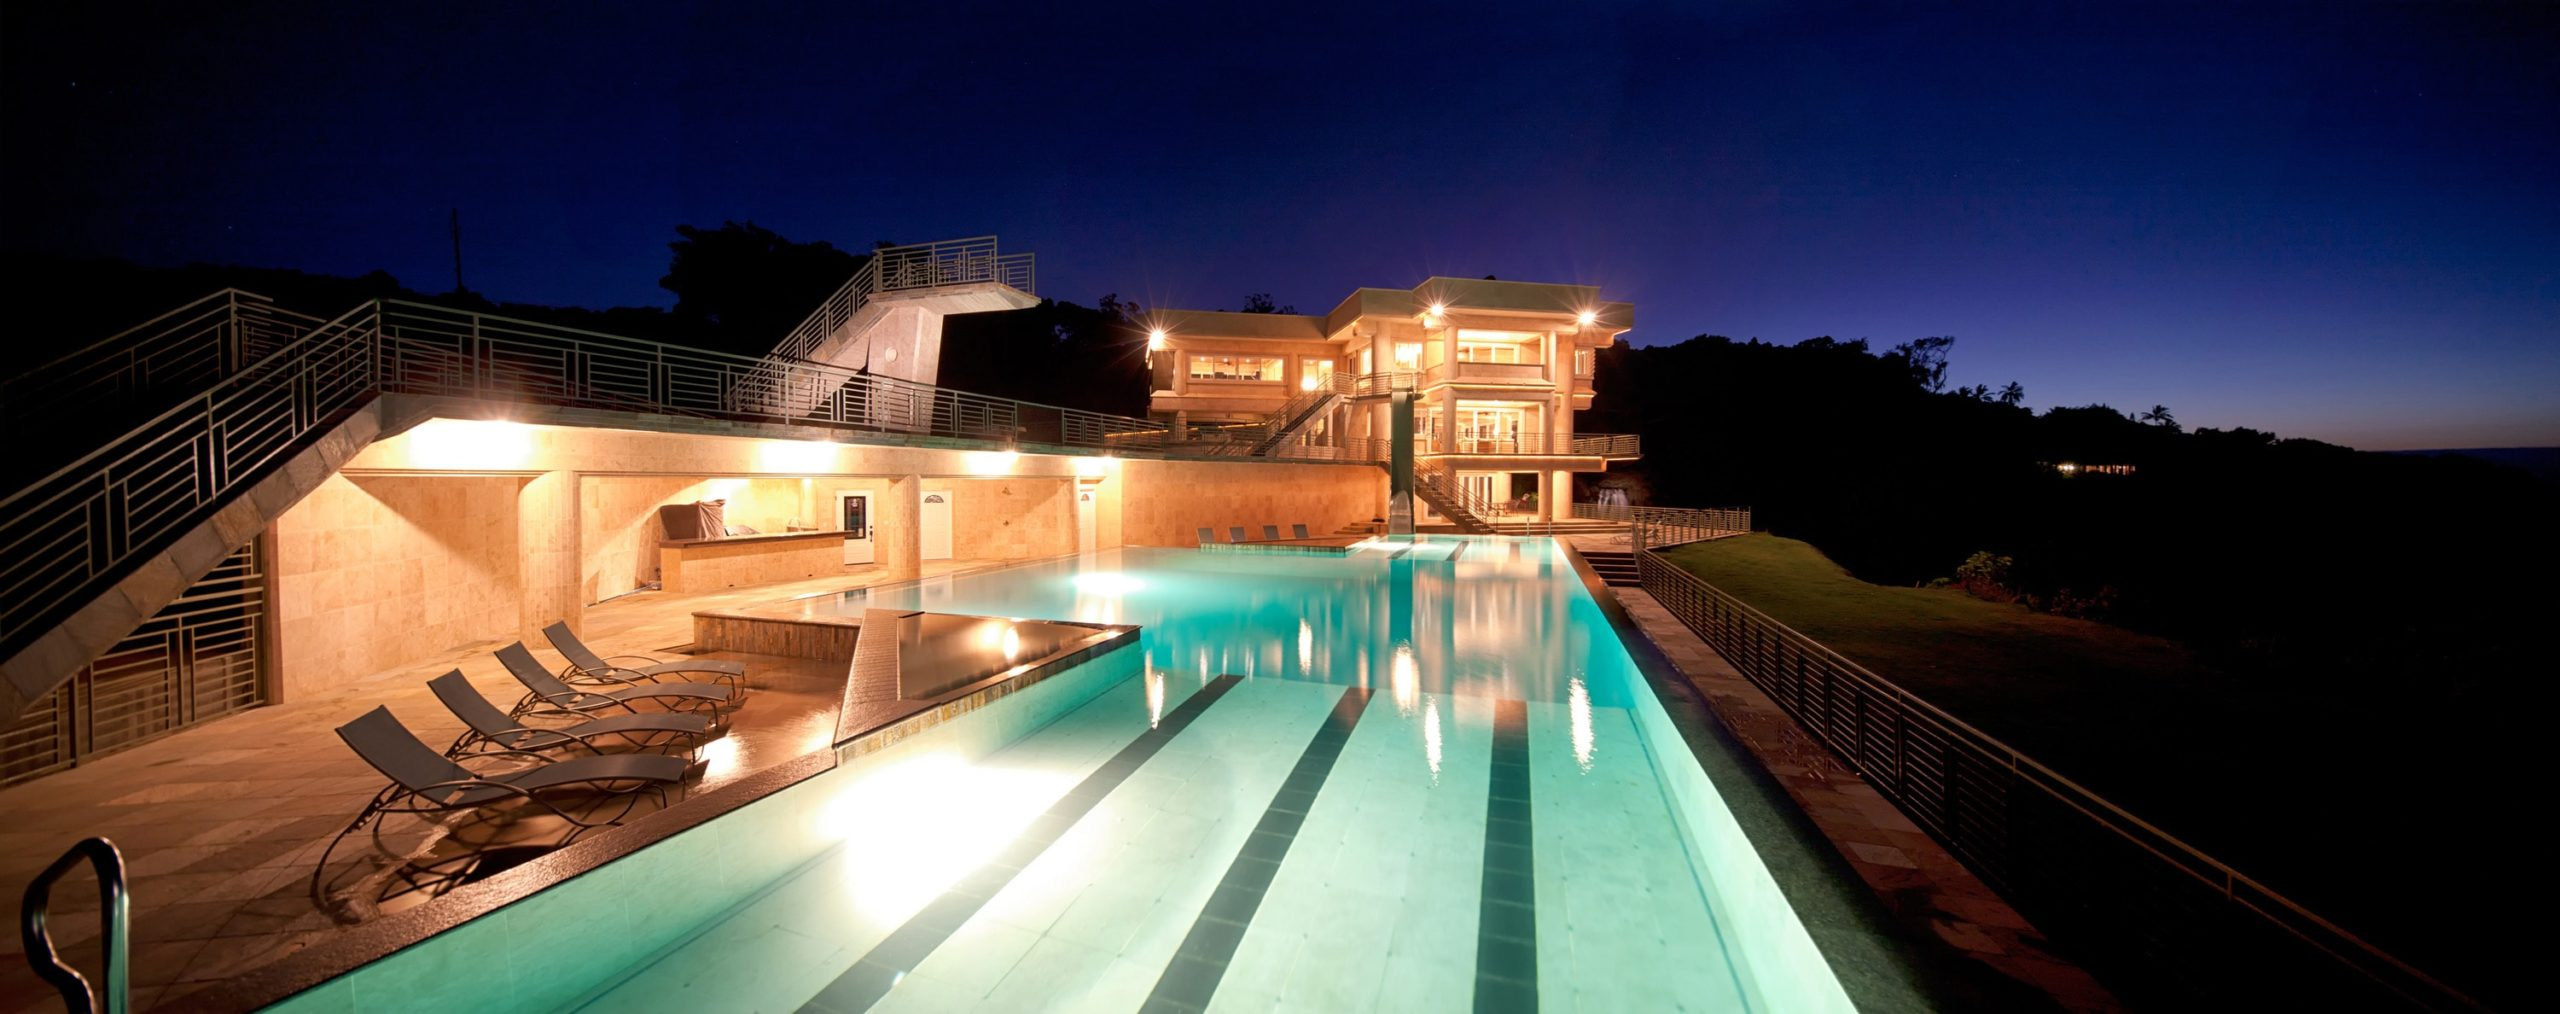 Night view of the infinity pool. Image courtesy of Toptenrealestatedeals.com.